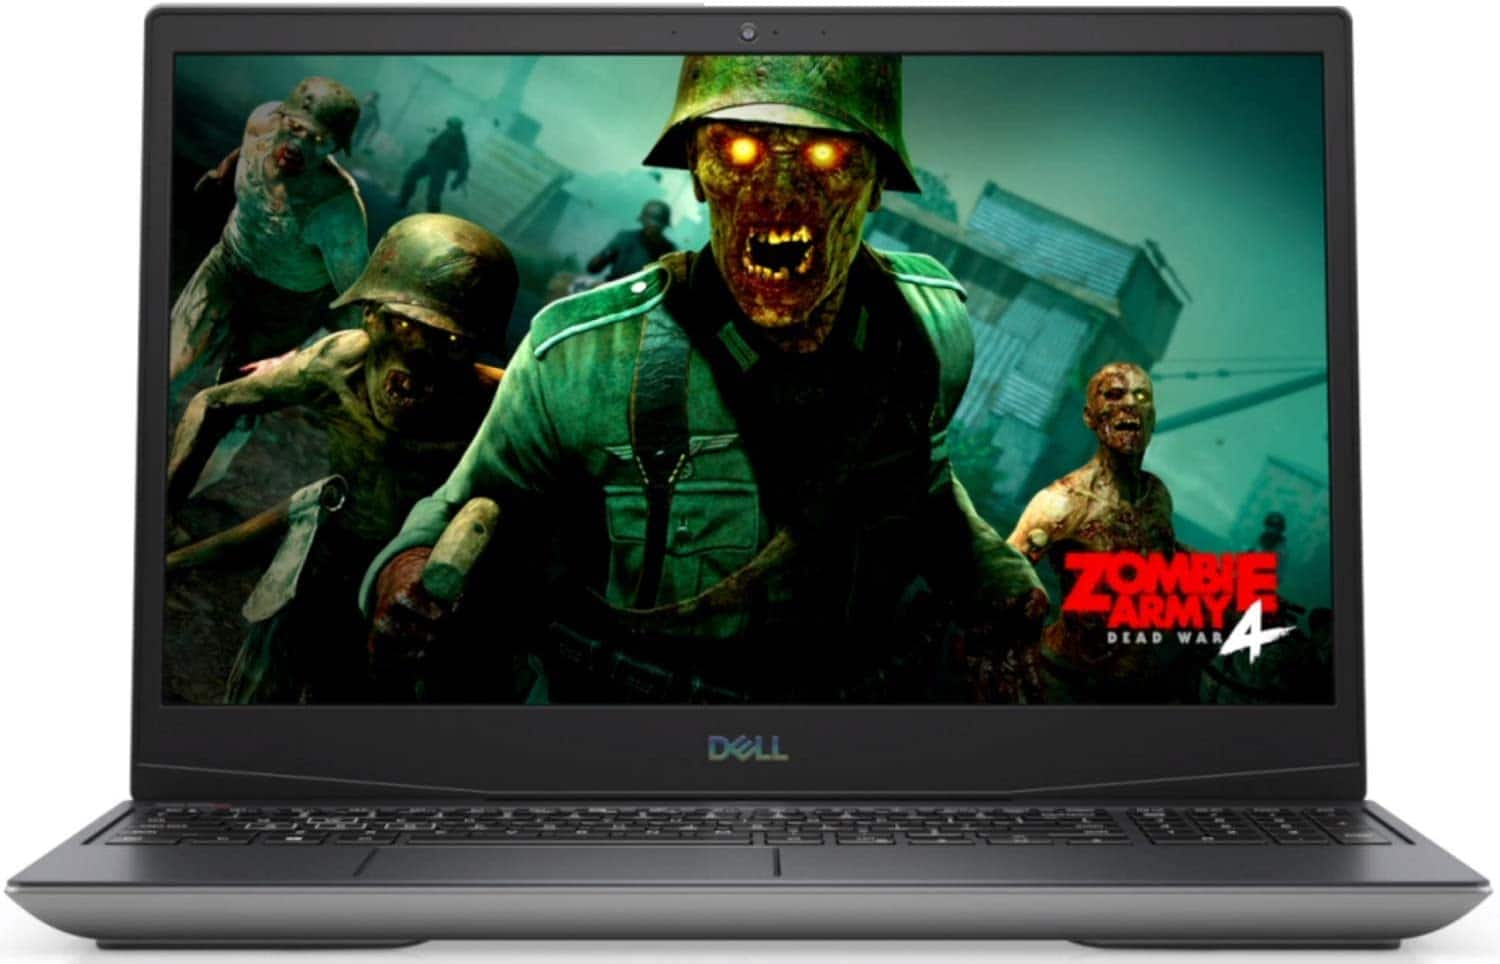 Dell G5 15 SE Laptop: Ryzen 7 4800H, 15.6 1080p 144Hz, 16GB DDR4, 256GB SSD, RX 5600M, Win 10 $1014.29 AC & More + Free Shipping @ Dell